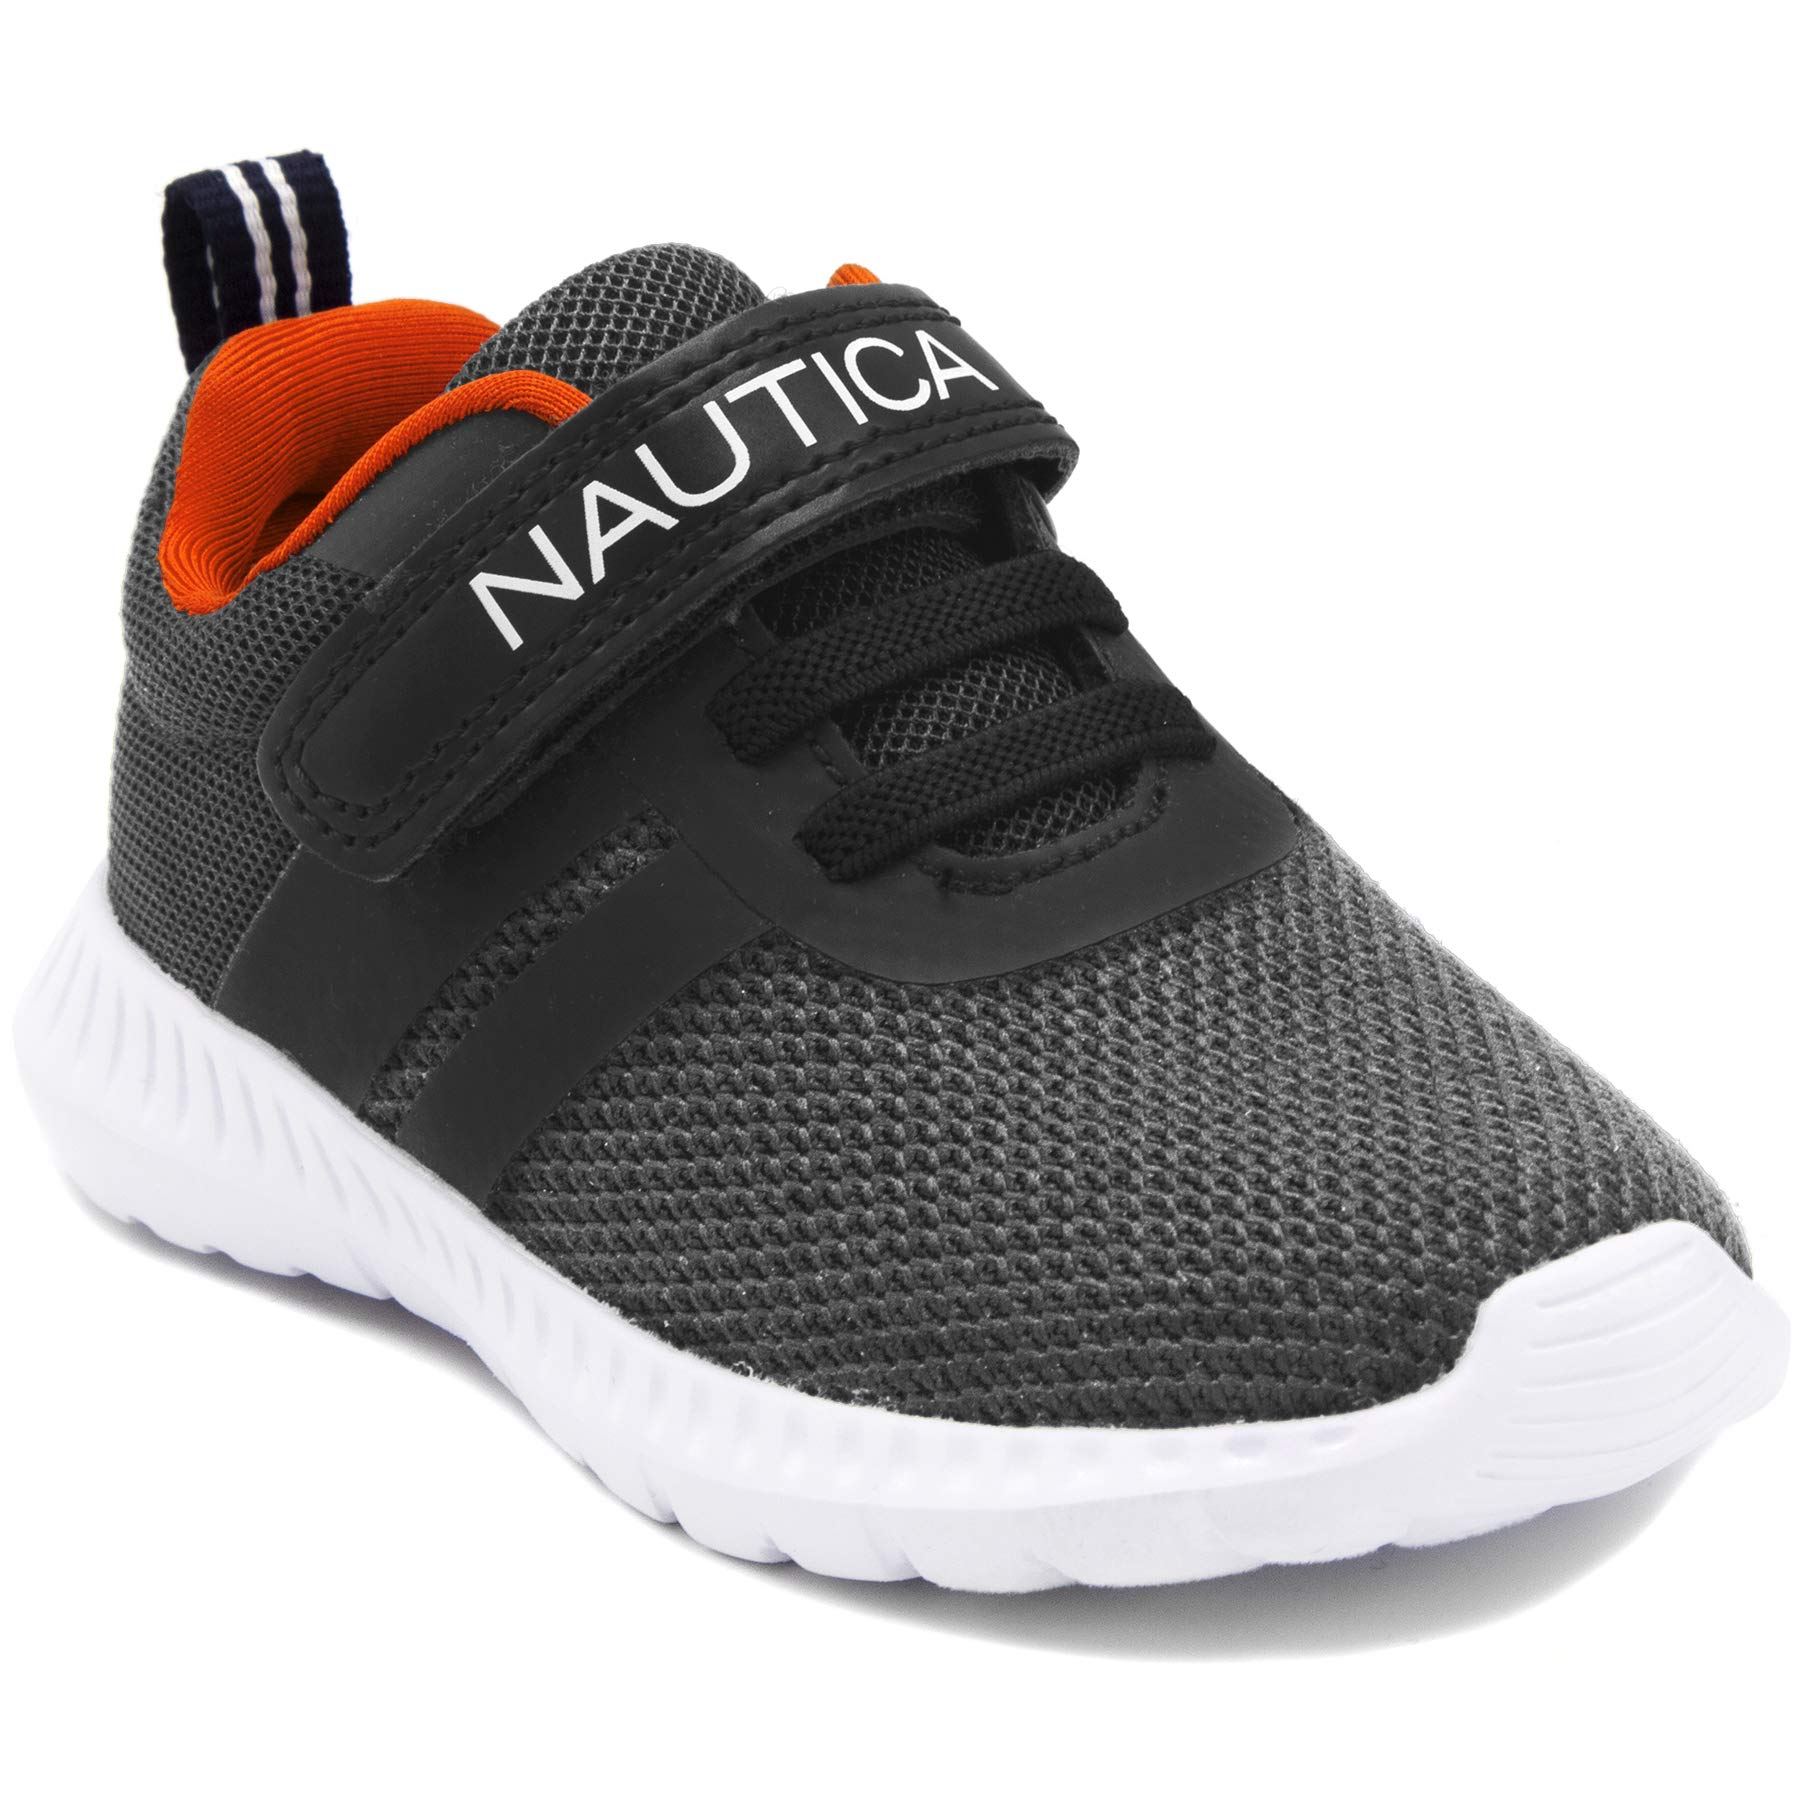 8a2c8b5e96 Galleon - Nautica Kids Boys Fashion Sneaker Athletic Running Shoe -Towhee-Grey-5